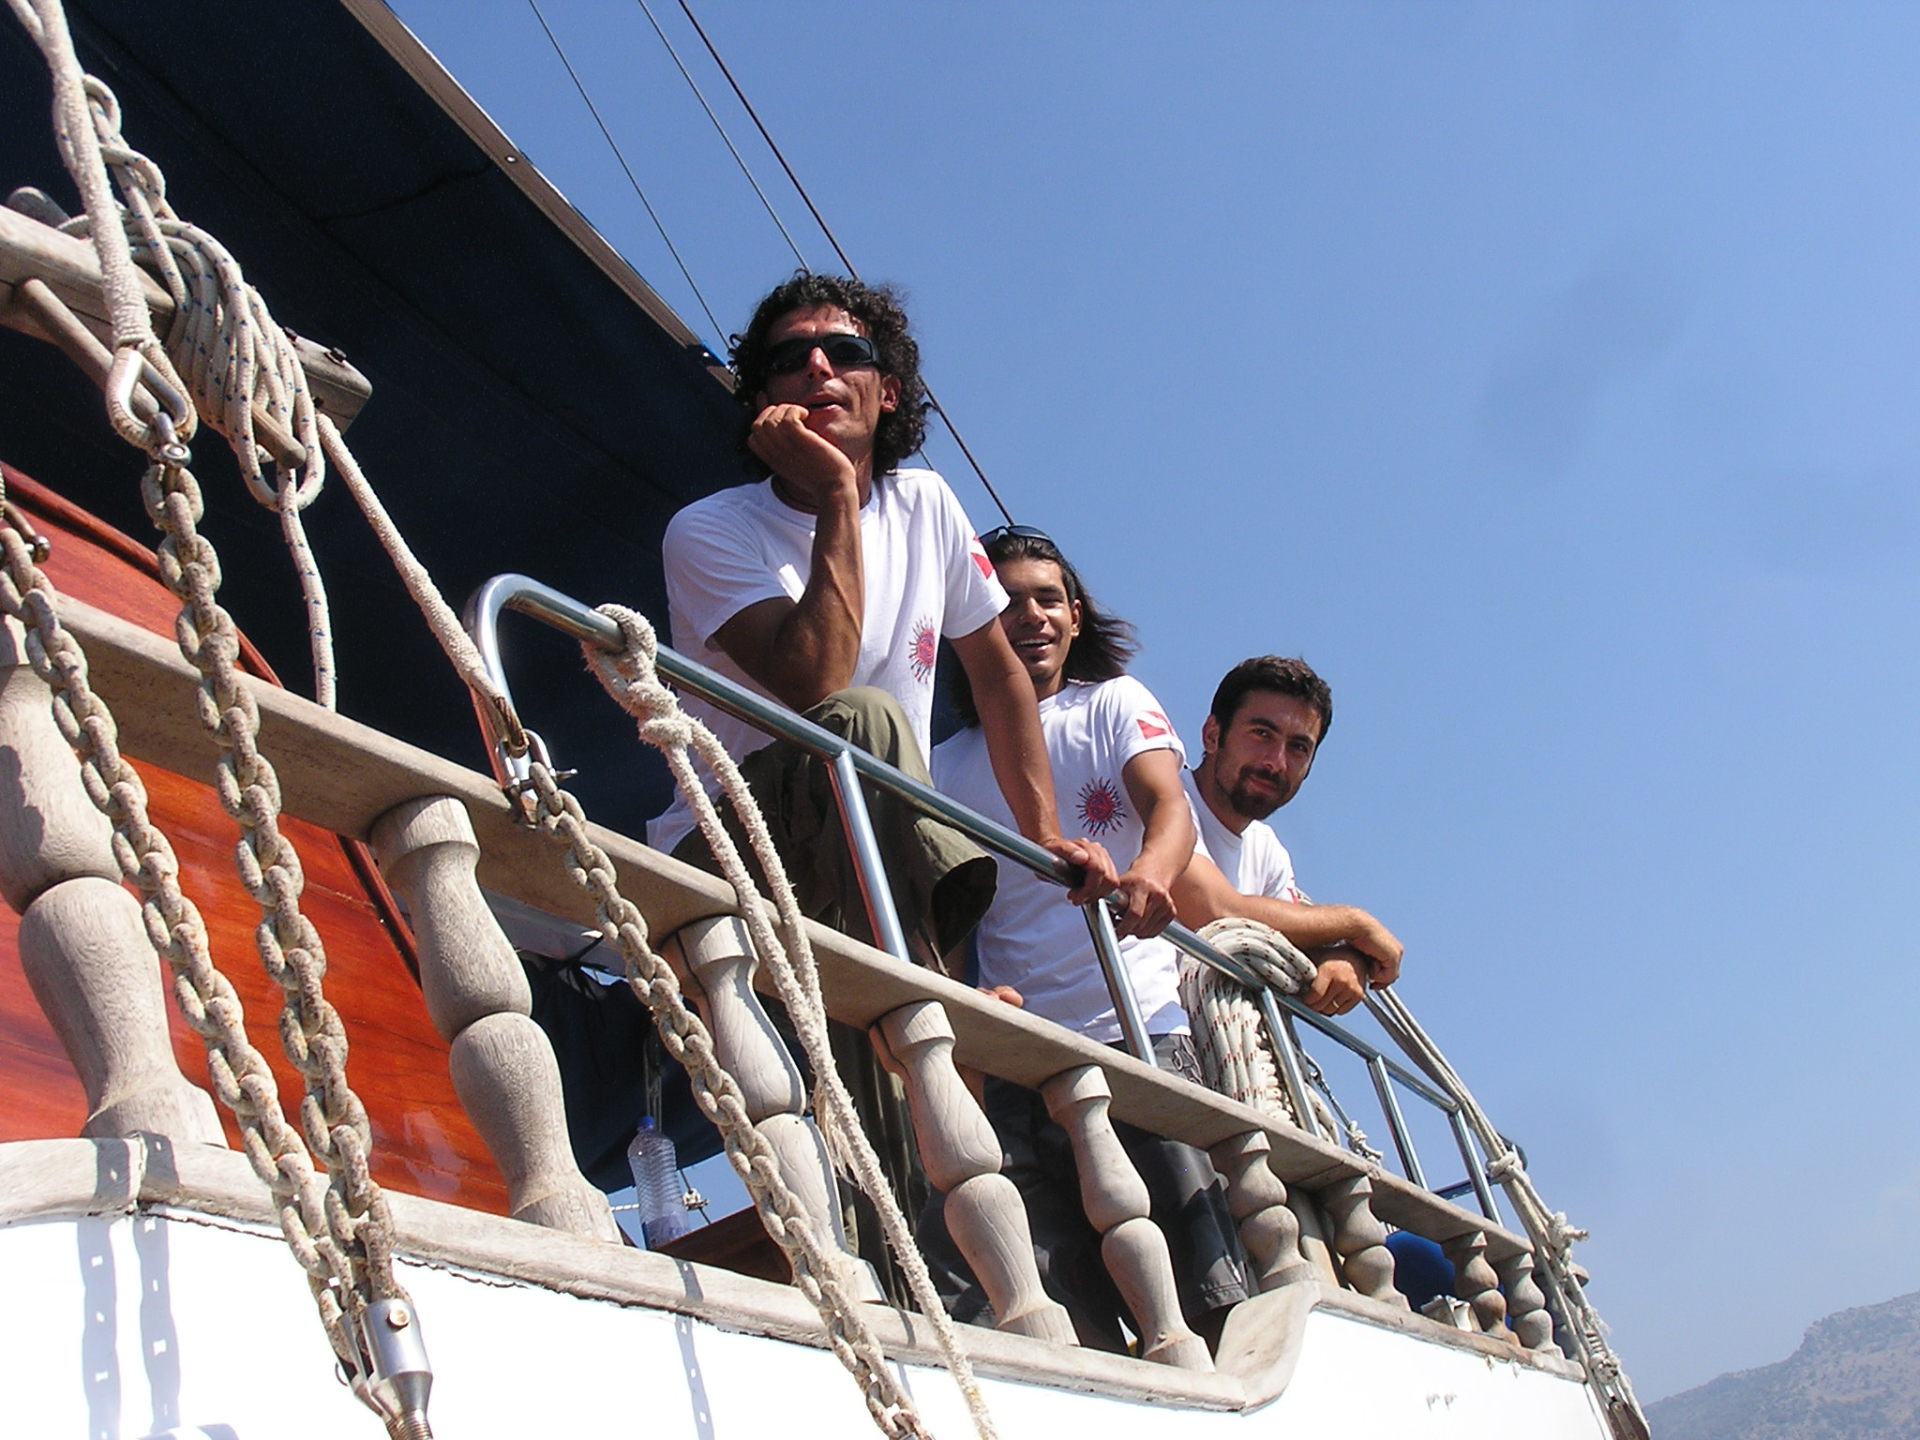 First Mate Orhan, Second Mate Söner, and Captain Atilla aboard the Sevi 5. Mediterranean Coast, Turkey: chapter 59, You must only to love them. http://mershon.wordpress.com